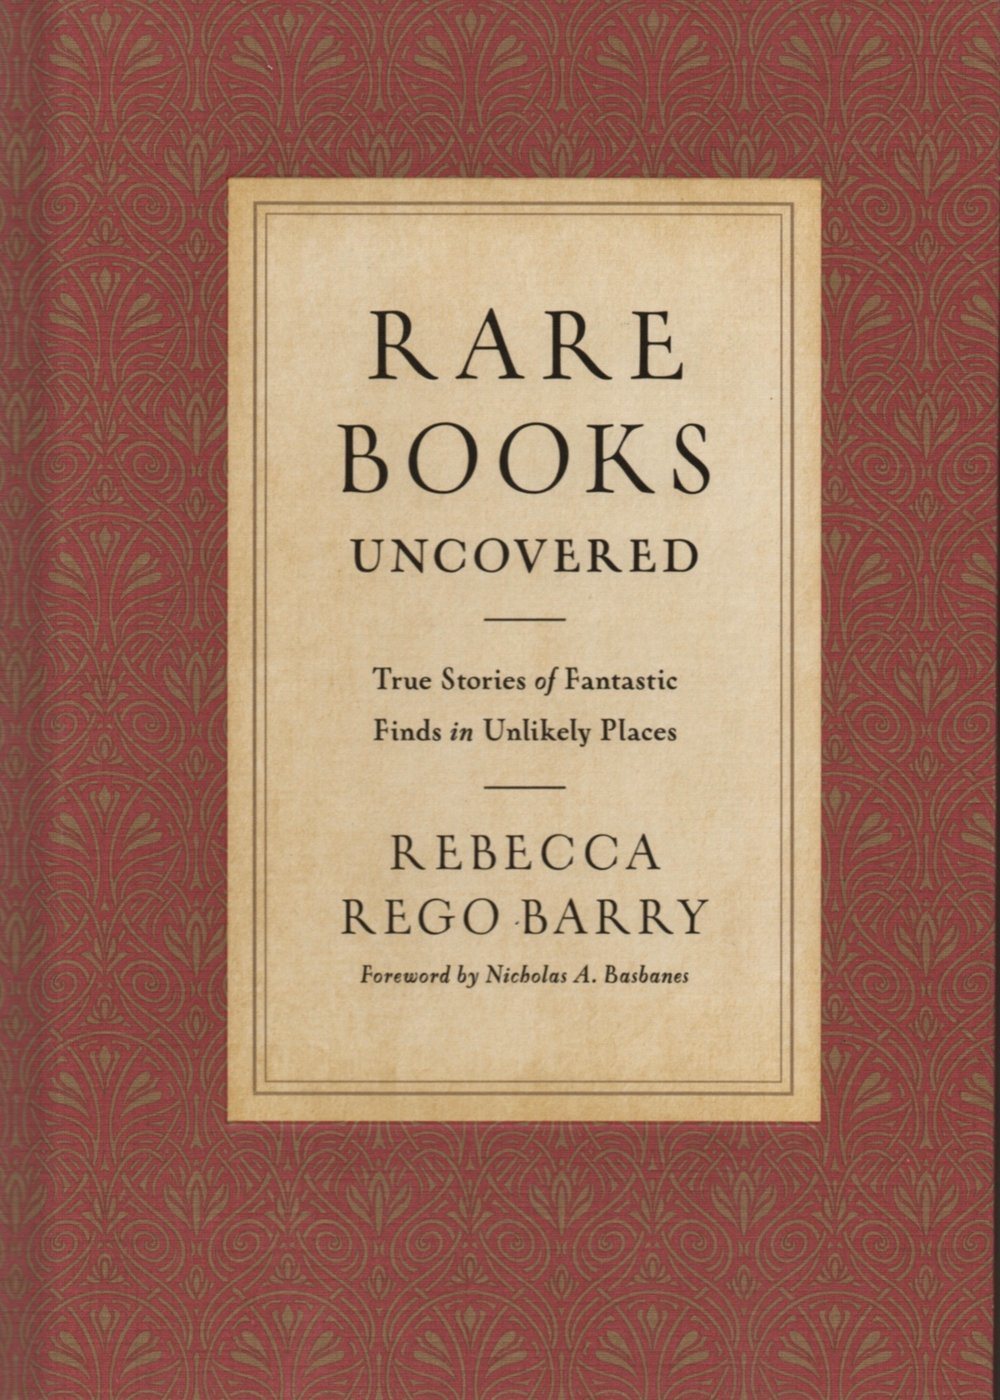 RareBooksUncovered Cover.jpg